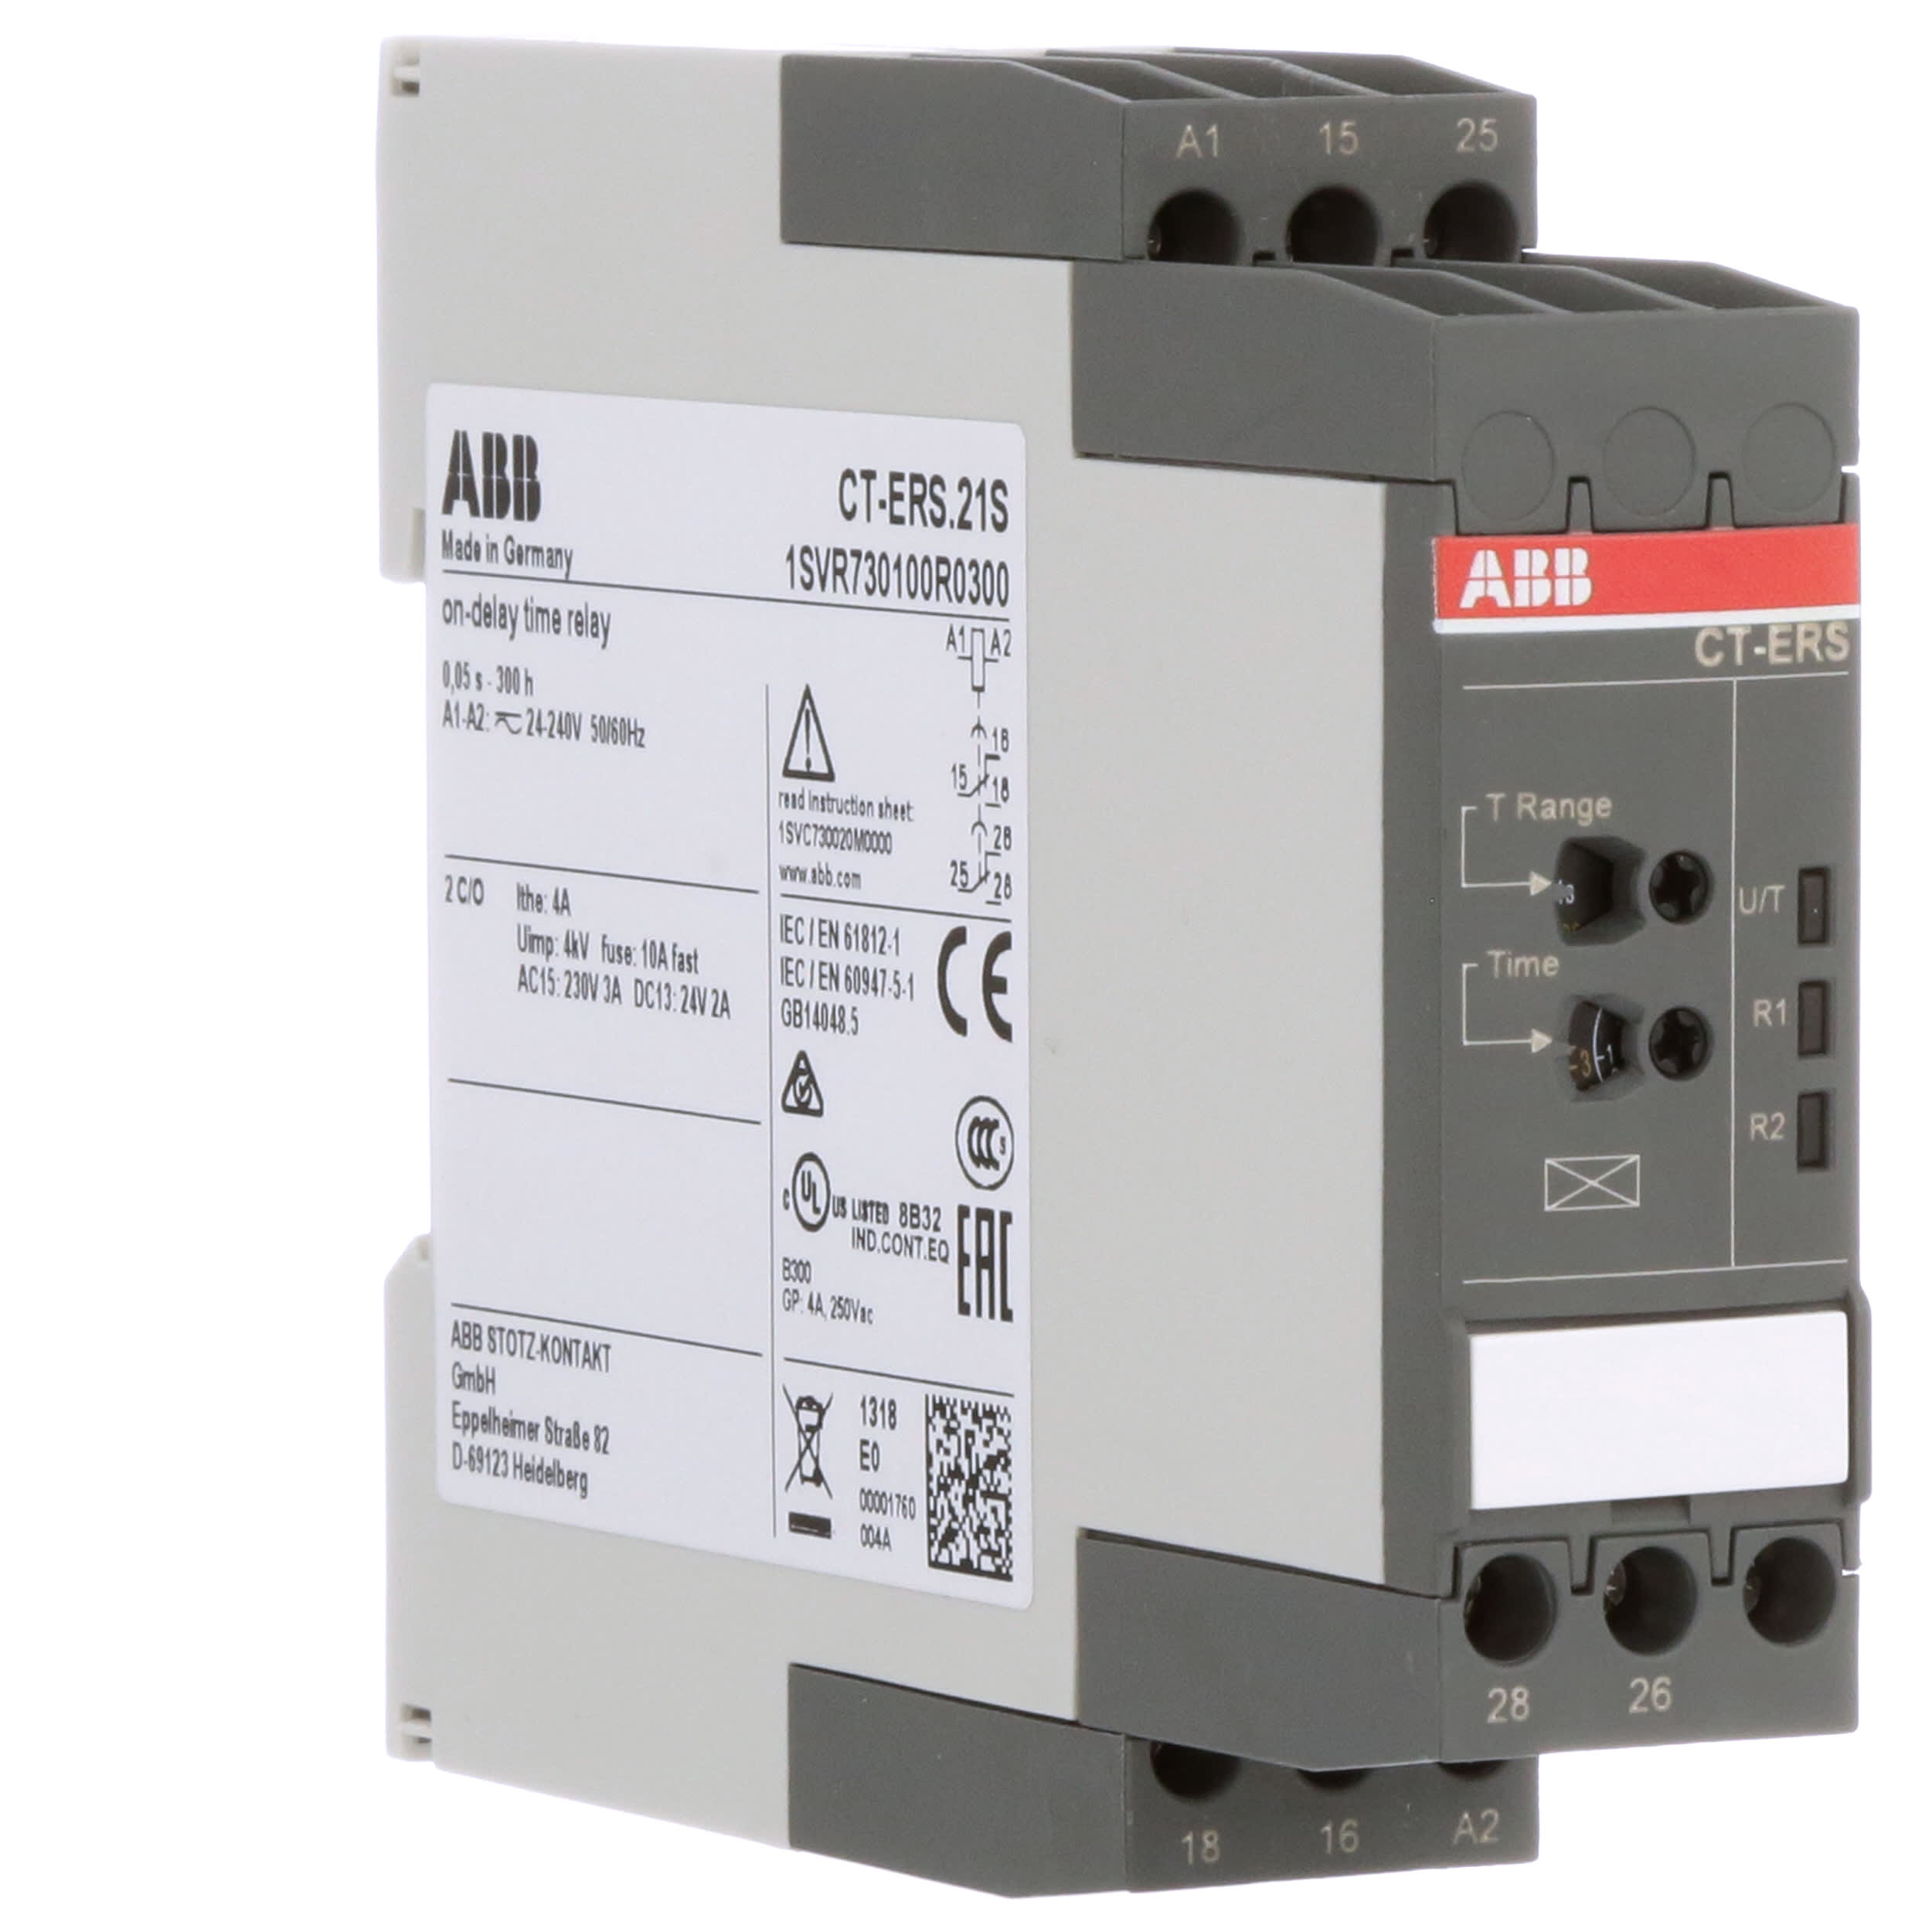 [DHAV_9290]  ABB - 1SVR730100R0300 - CT-ERS.21S Time relay ON-delay - Allied Electronics  & Automation | Abb Solid State Relay Wiring Diagram |  | Allied Electronics